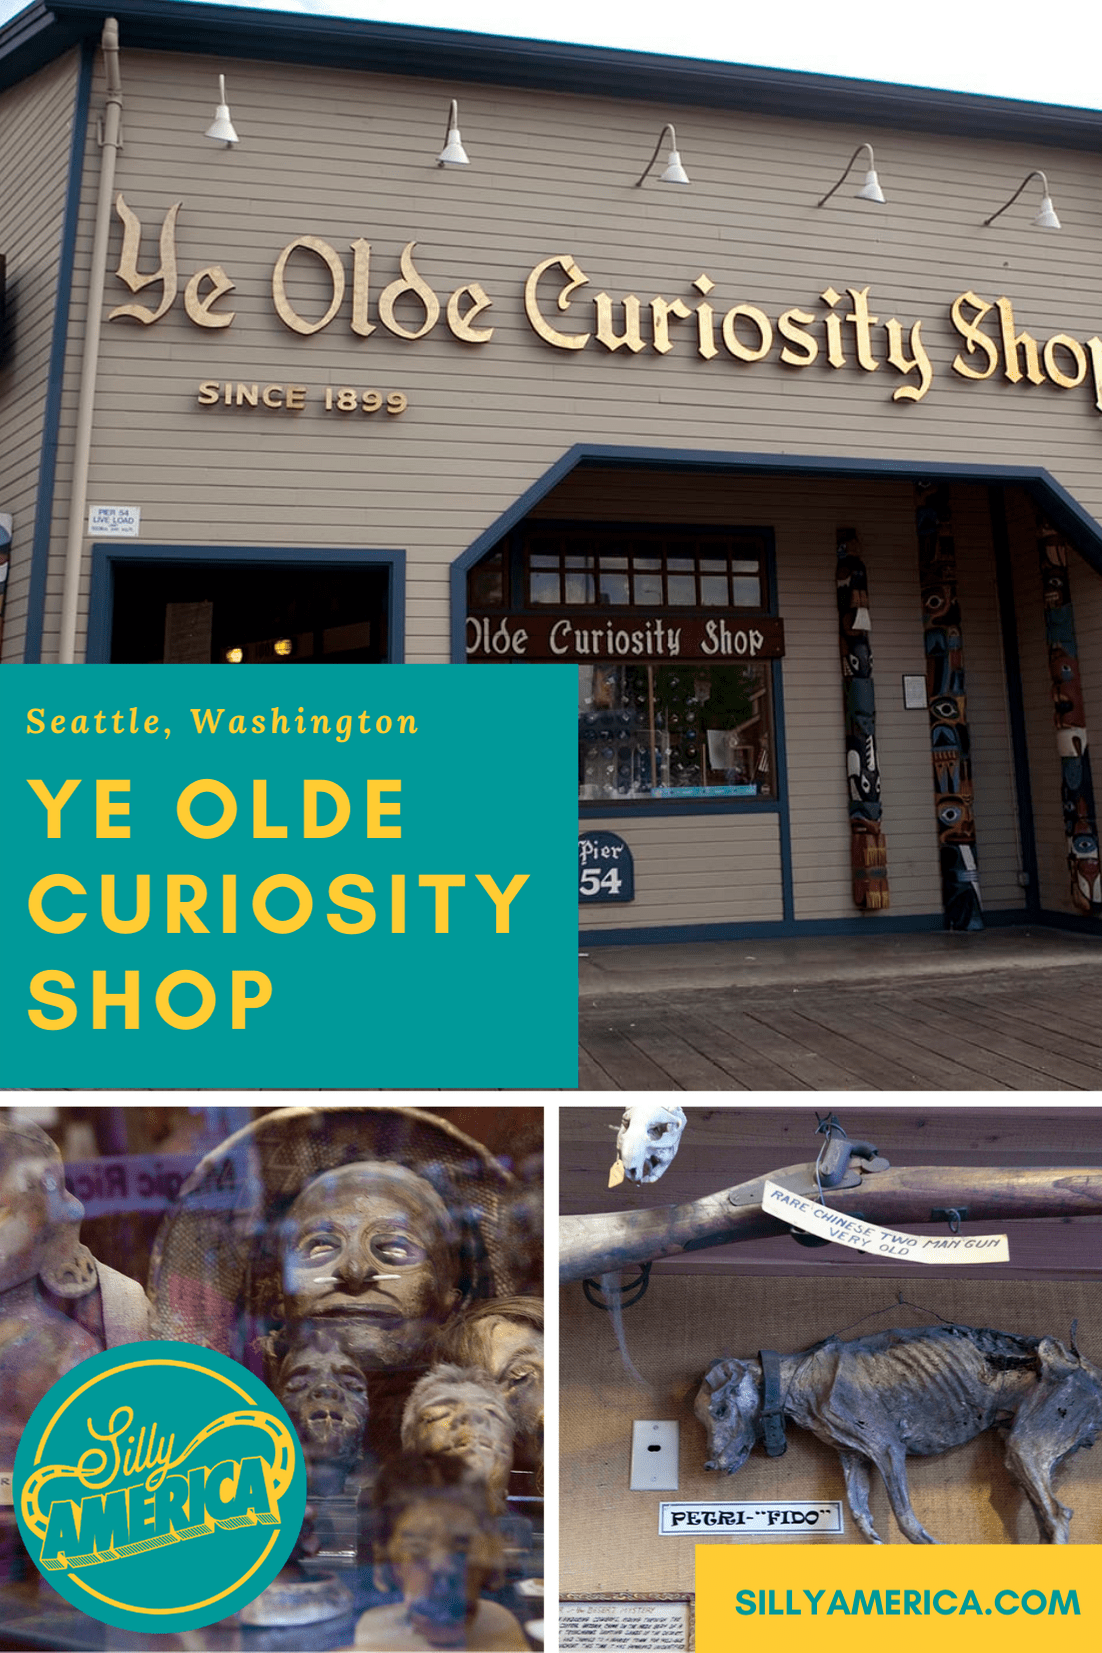 Ye Olde Curiosity Shop in Seattle, Washington is a must-see destination for lovers of the weird. The shop and oddity museum opened in 1899.  #WashingtonRoadsideAttractions #WashingtonRoadsideAttraction #RoadsideAttractions #RoadsideAttraction #RoadTrip #WashingtonRoadTrip #WashingtonRoadTripMap #WashingtonRoadTripBucketLists #WashingtonBucketList #WashingtonWinterRoadTrip #SeattleRoadTrip #Seattle #SeattleWashington